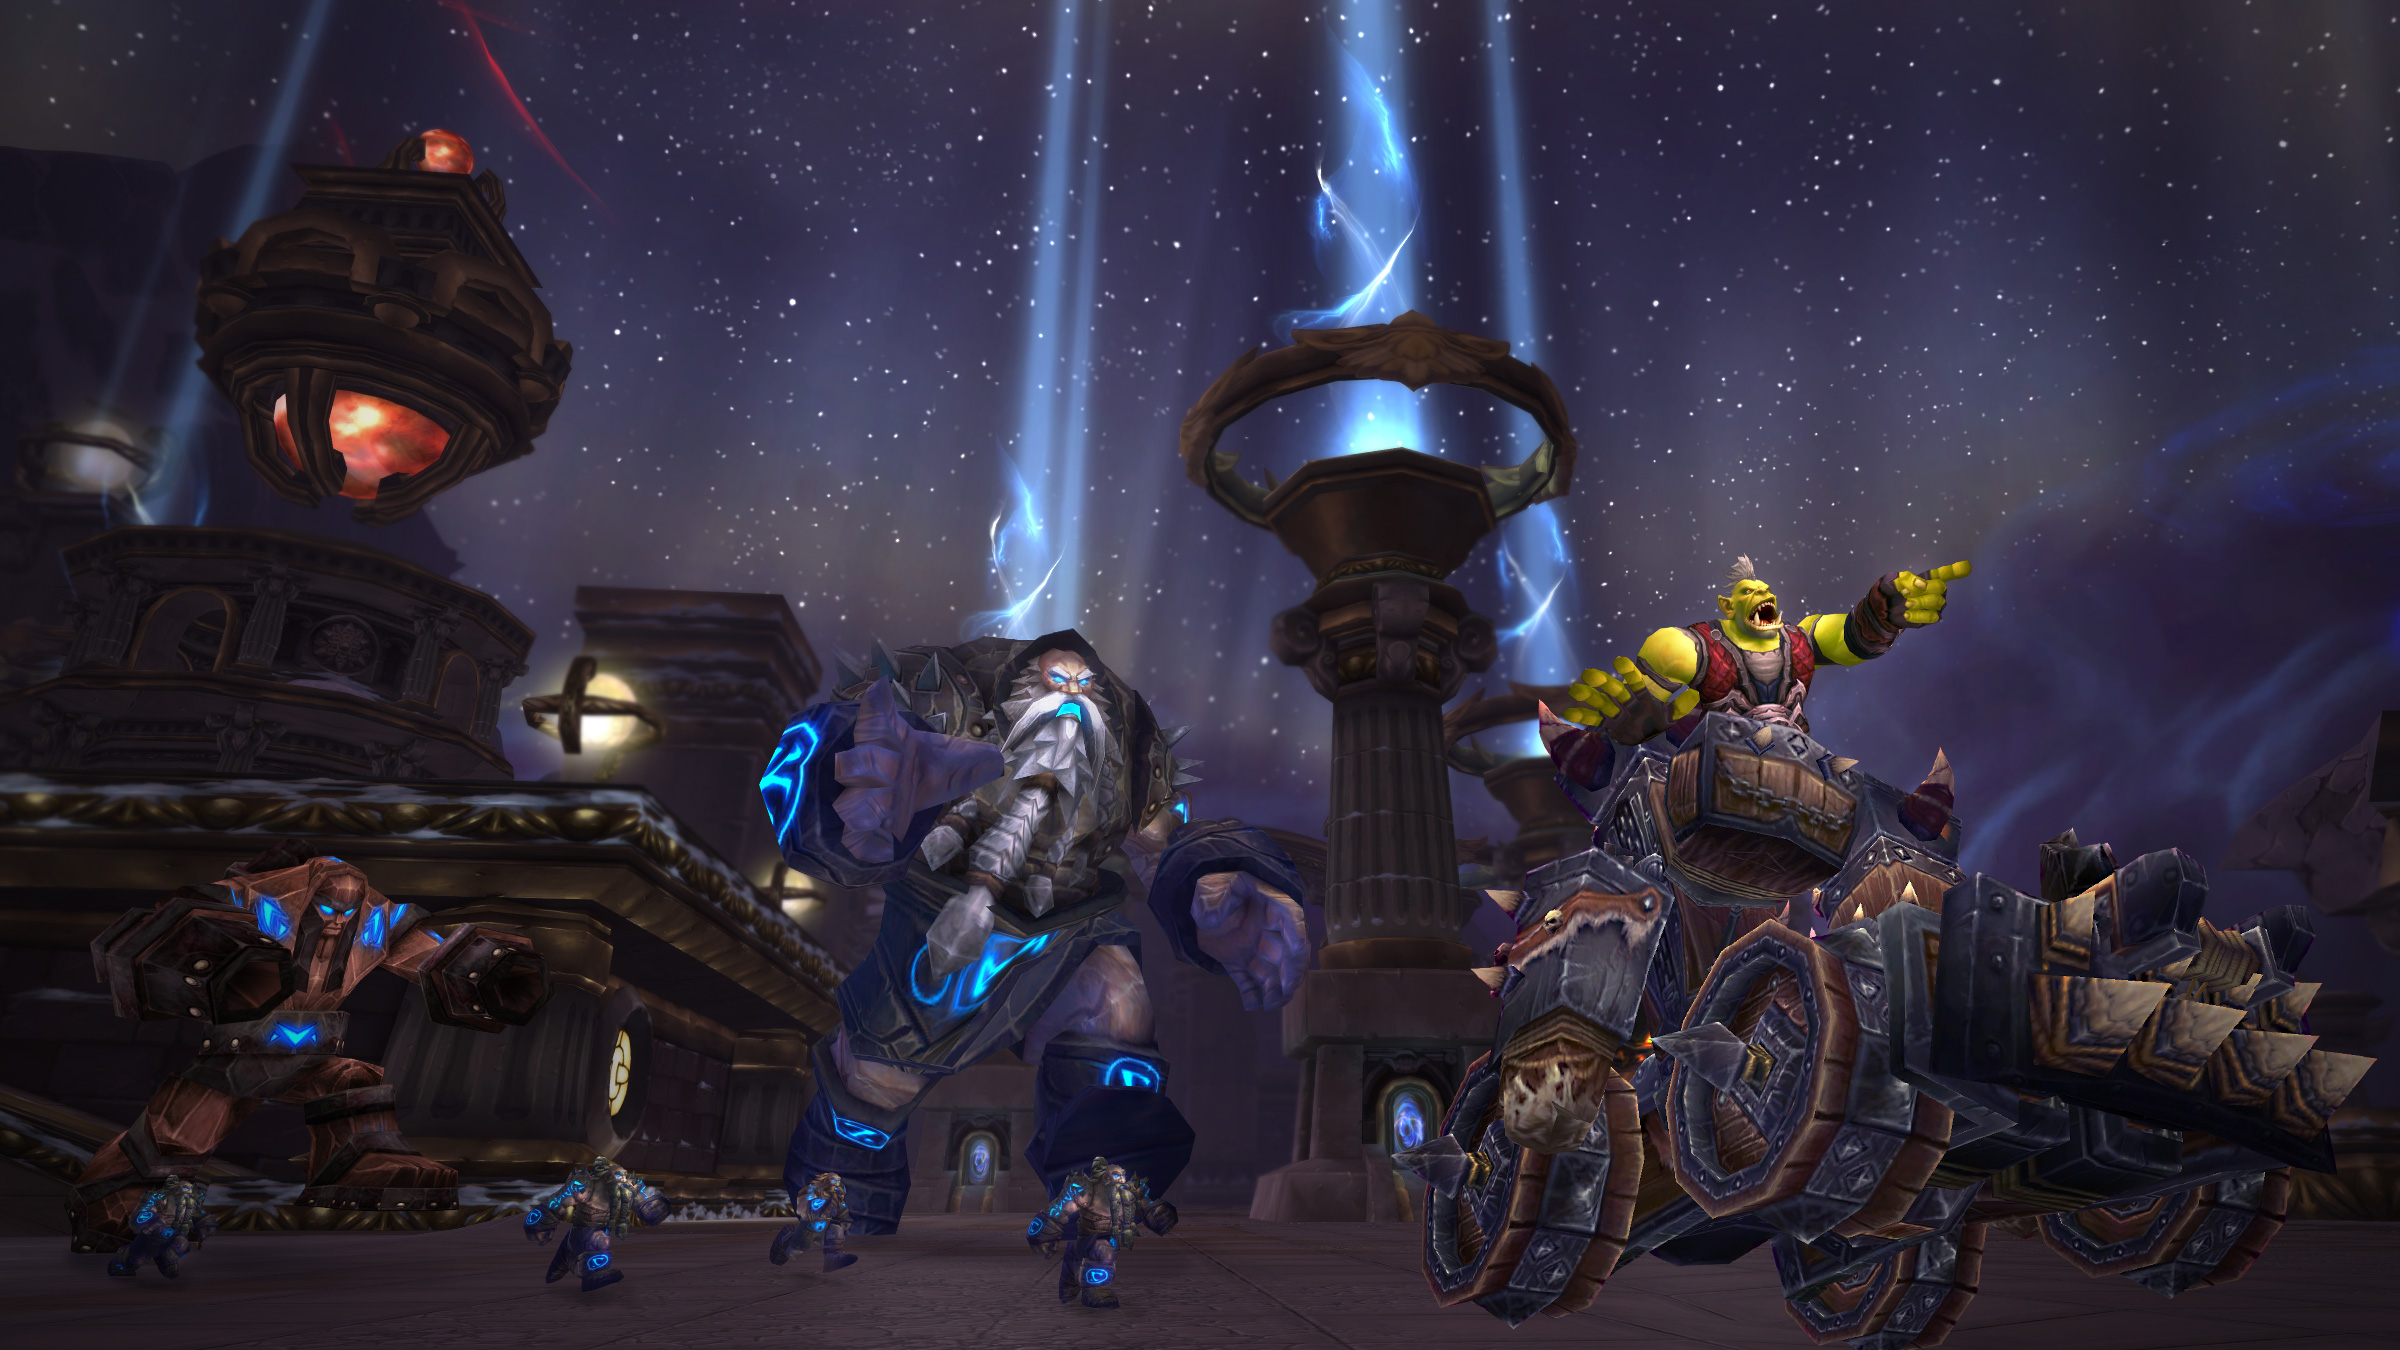 Wrath of the Lich King Timewalking Returns—December 29-January 5